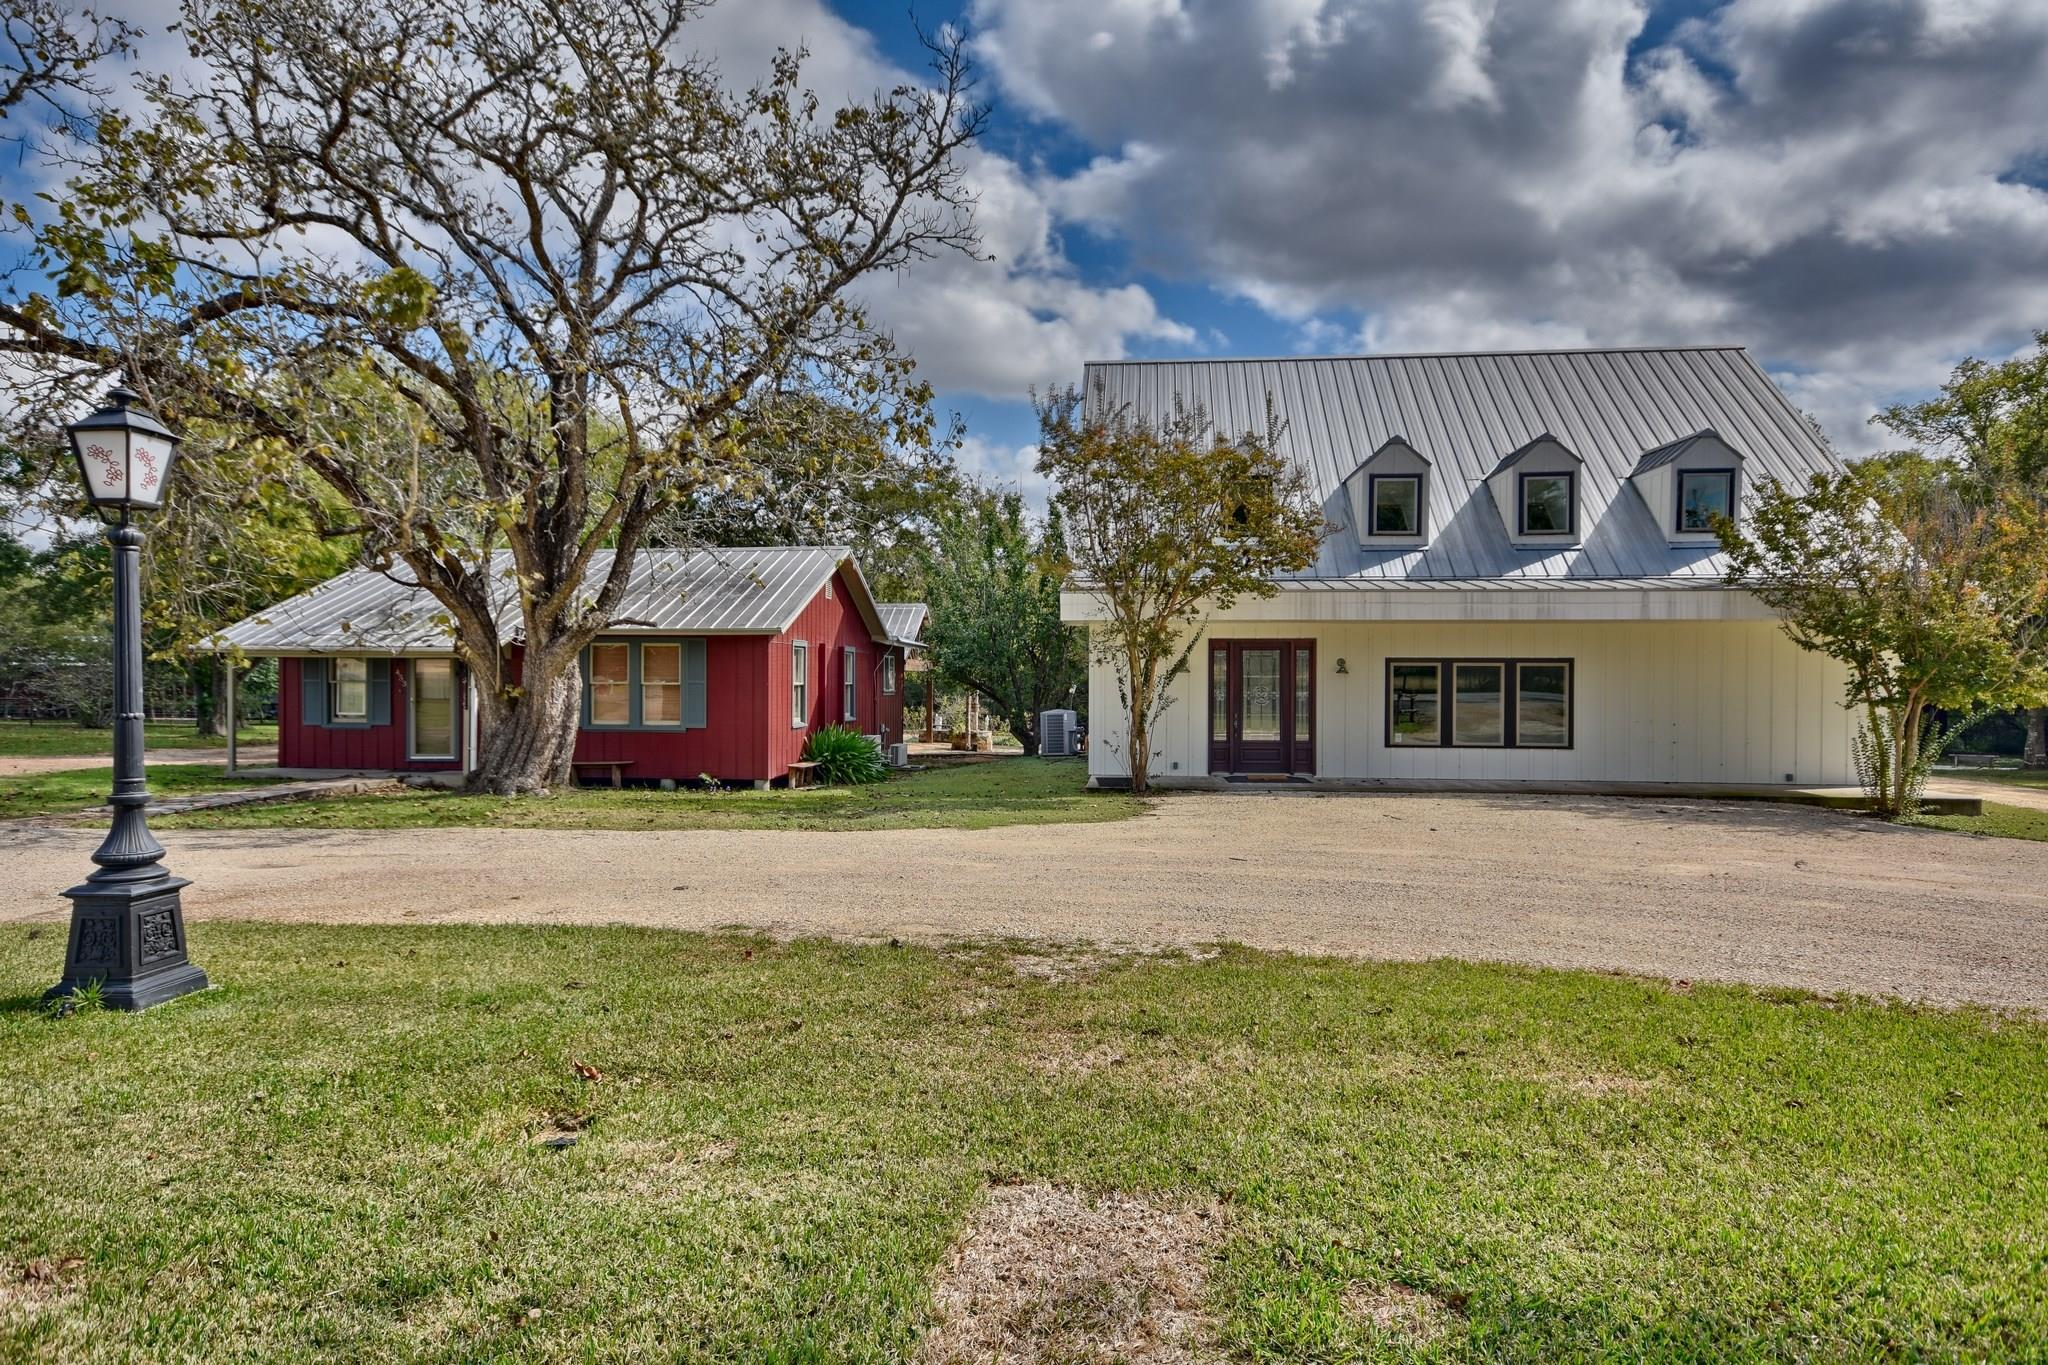 453 N Washington Street Property Photo - Round Top, TX real estate listing